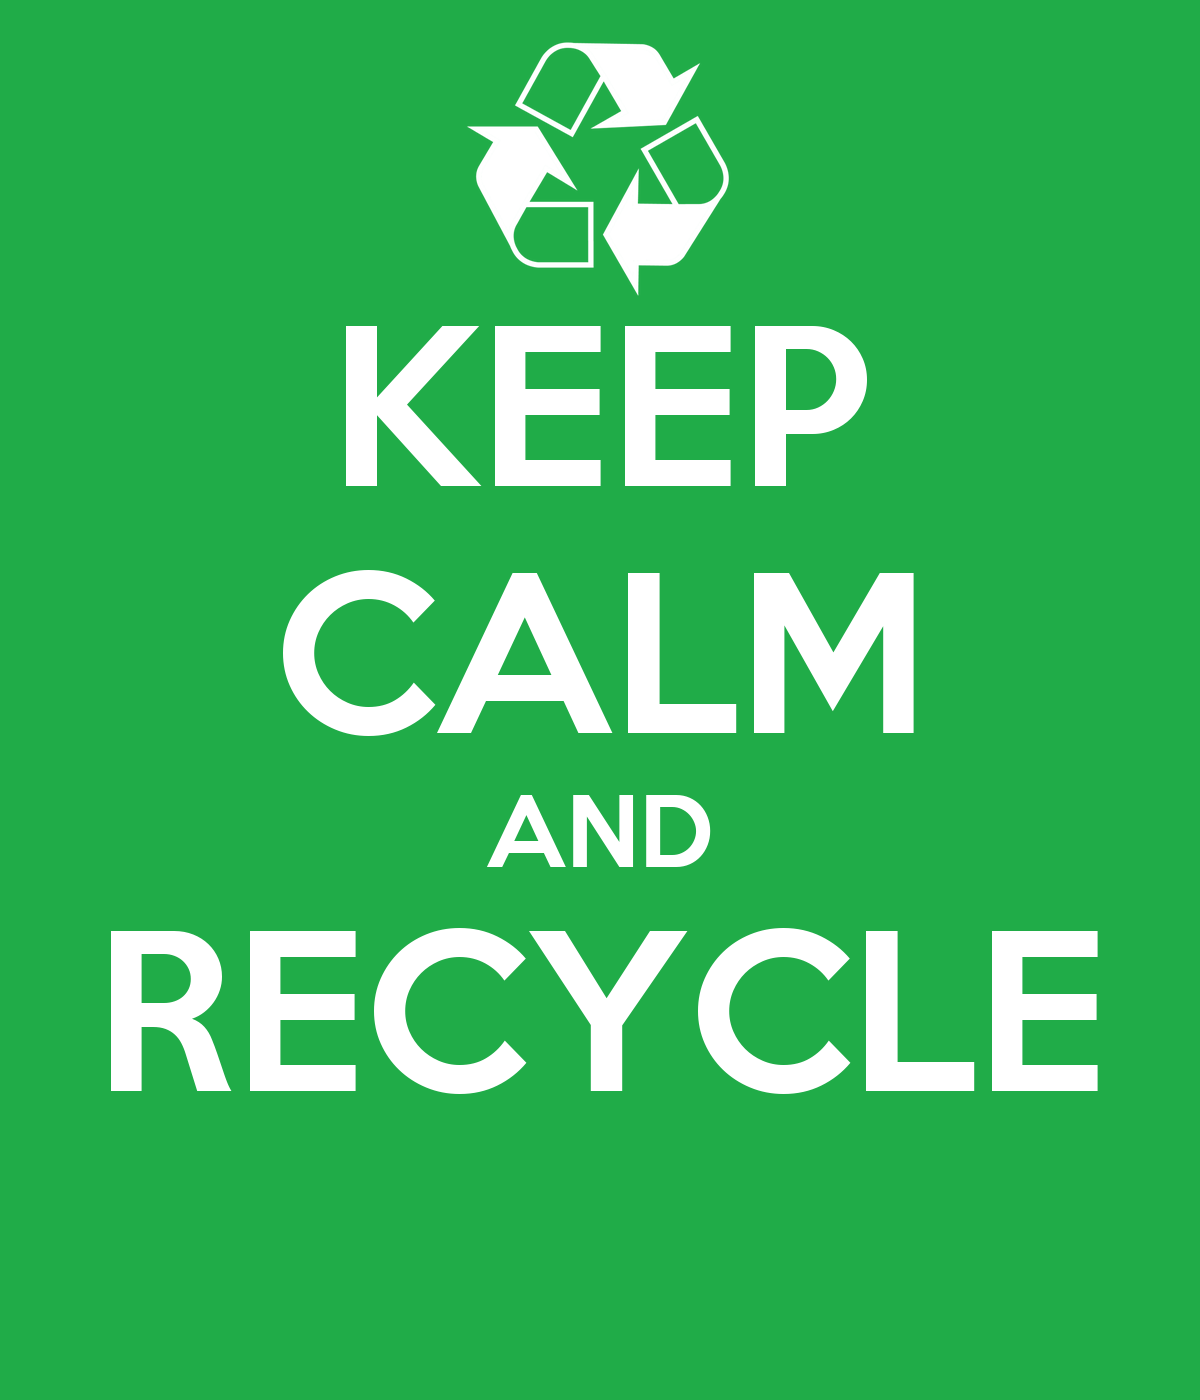 Design Poster On Recycling